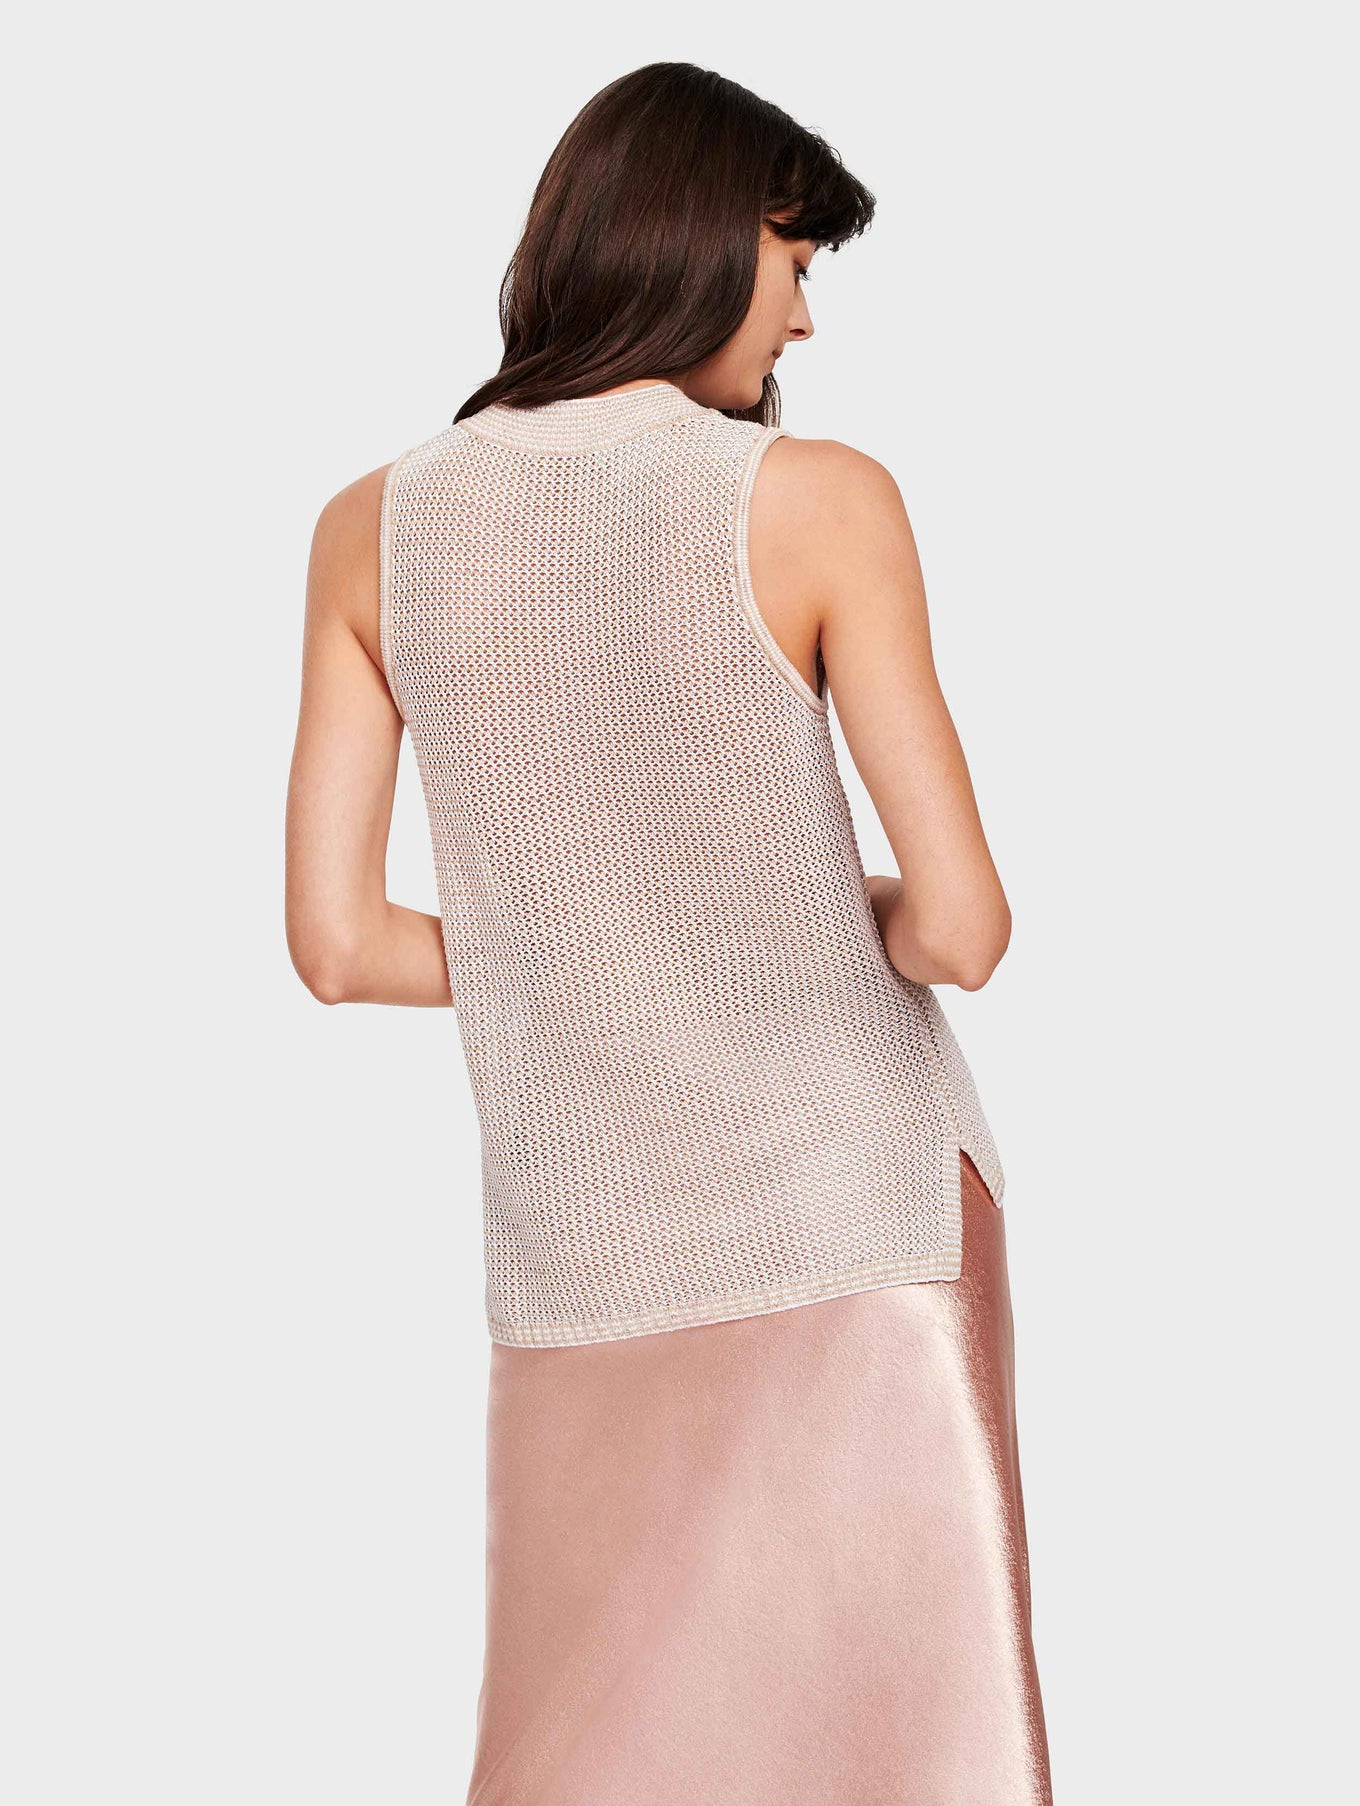 Lightweight Cotton Mockneck Knit Tank - Bamboo/White - Image 3